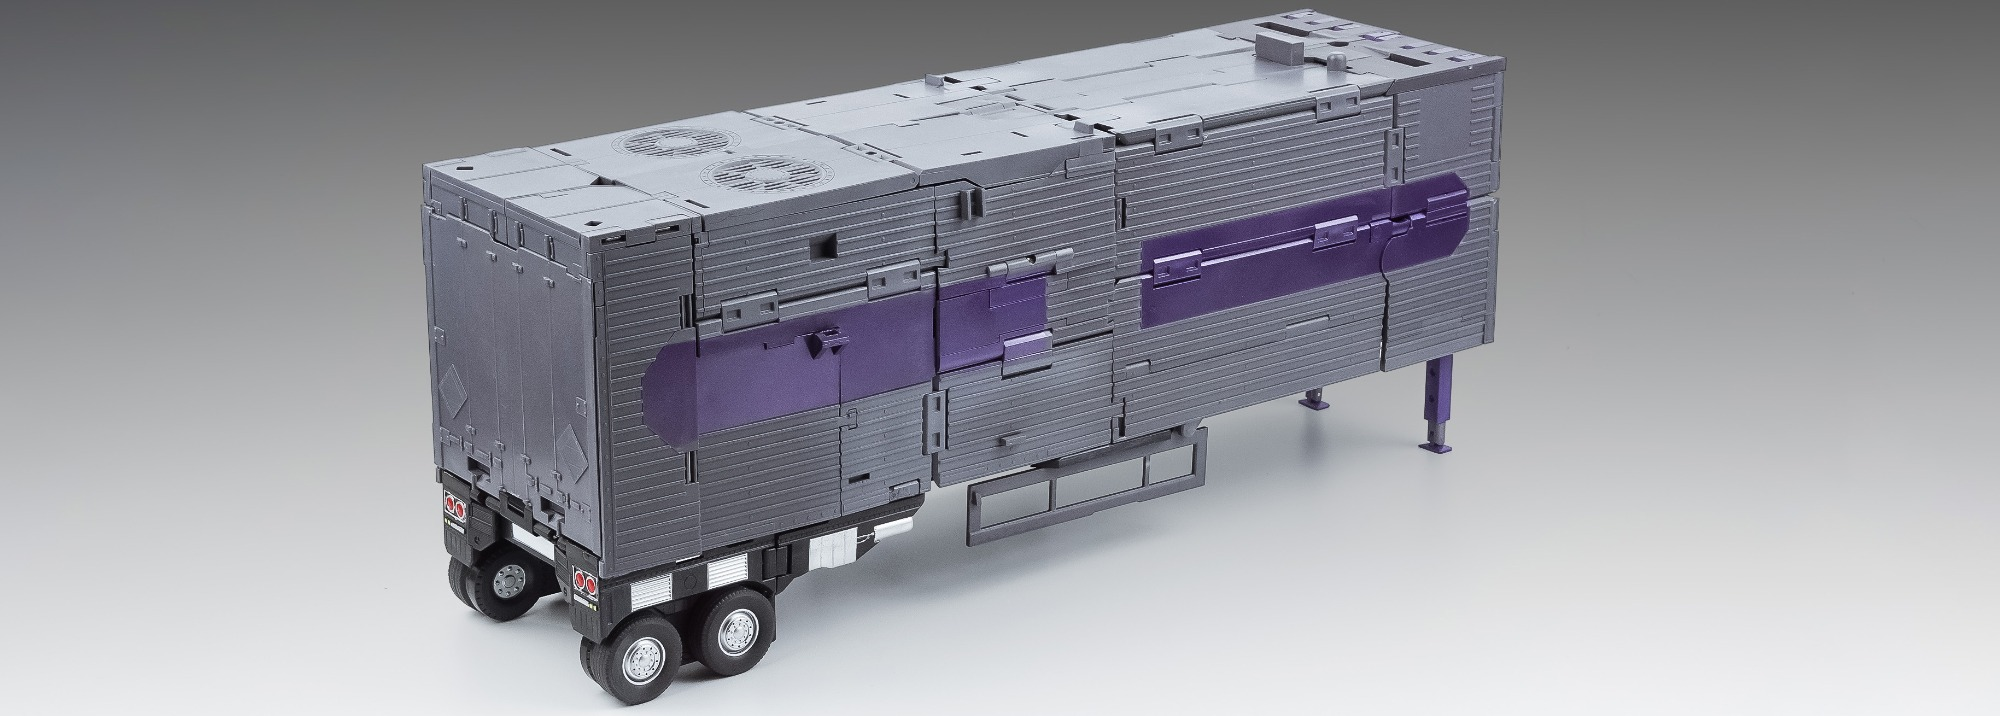 X-transbots MX-12B Trailer for combiner Monolith